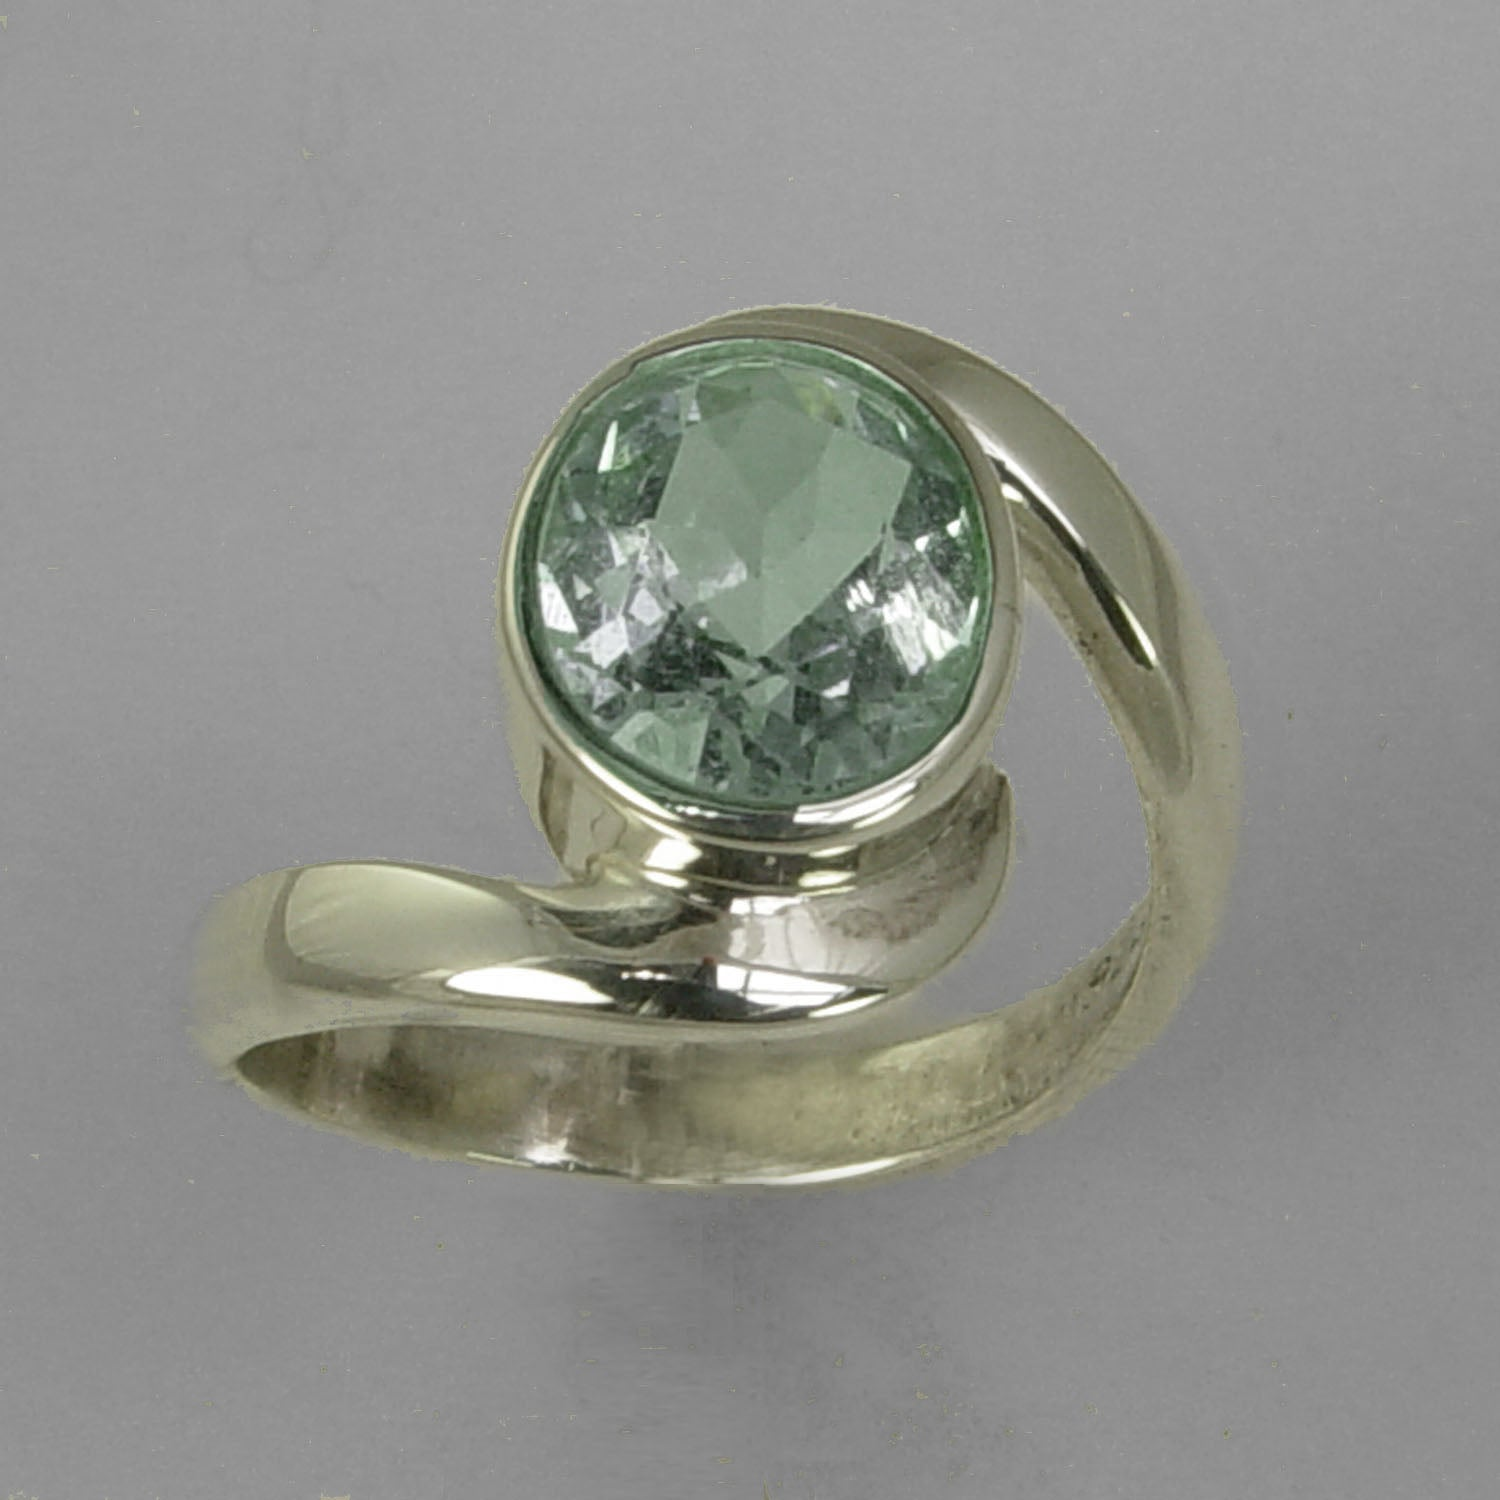 Aquamarine 3 ct Oval Bezel Set Sterling Silver Swirl Shank Ring, Size 8